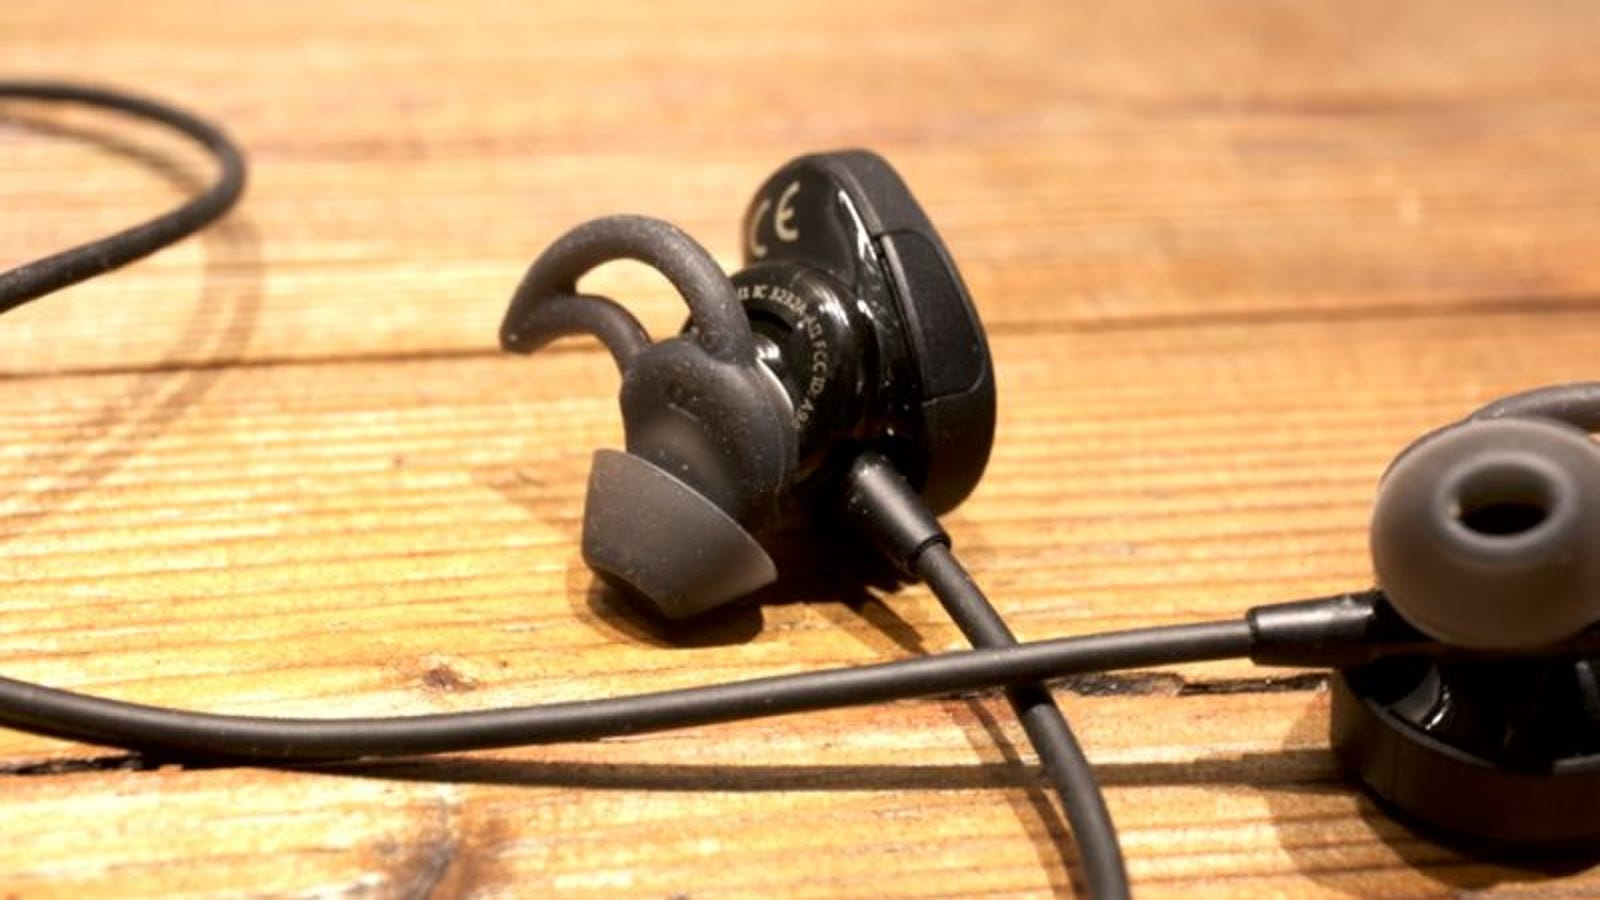 marshmallow earbuds tips - Bose SoundSport Wireless Users Are Reporting Problems With 'Heavy Sweat' [UPDATE]